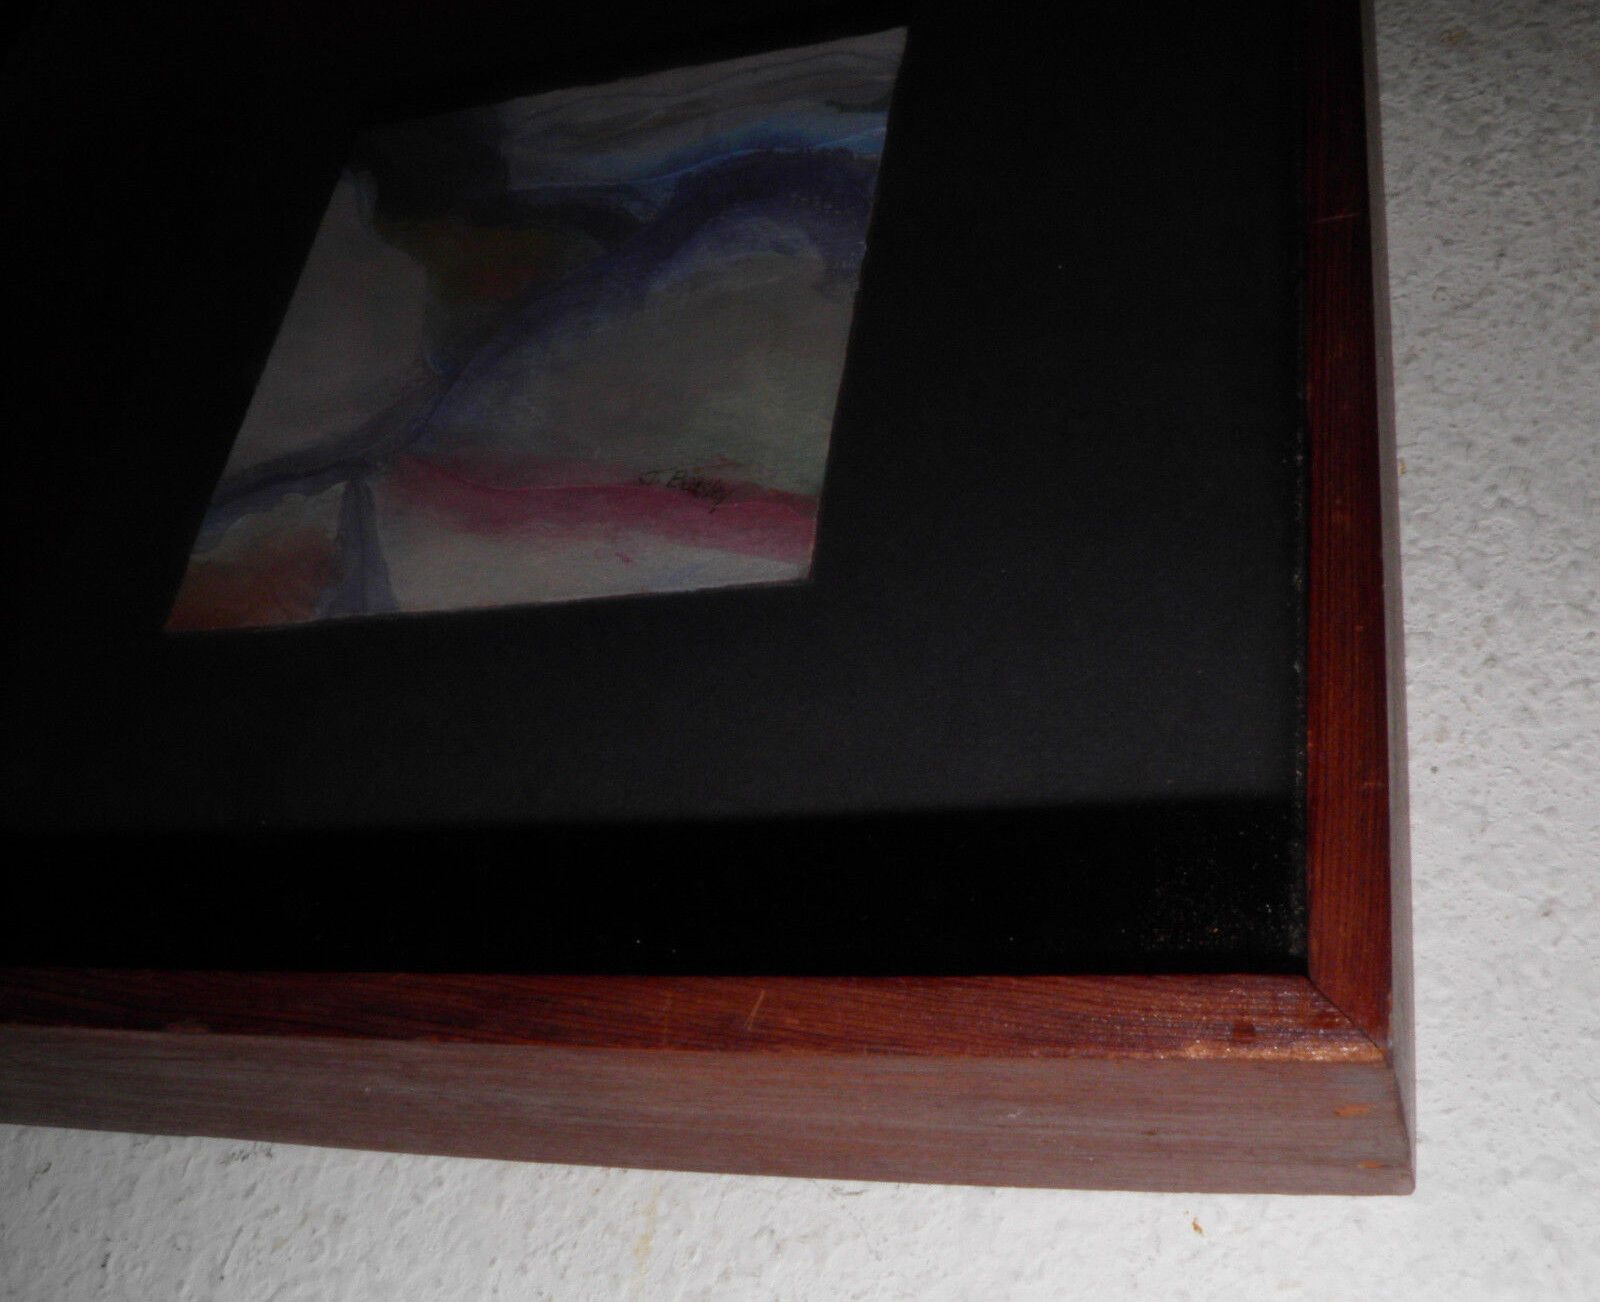 MODERN 1978 ABSTRACT ART SMALL PAINTING SIGNED J.Beasley 11x11 Buy It Now Save  - $48.84